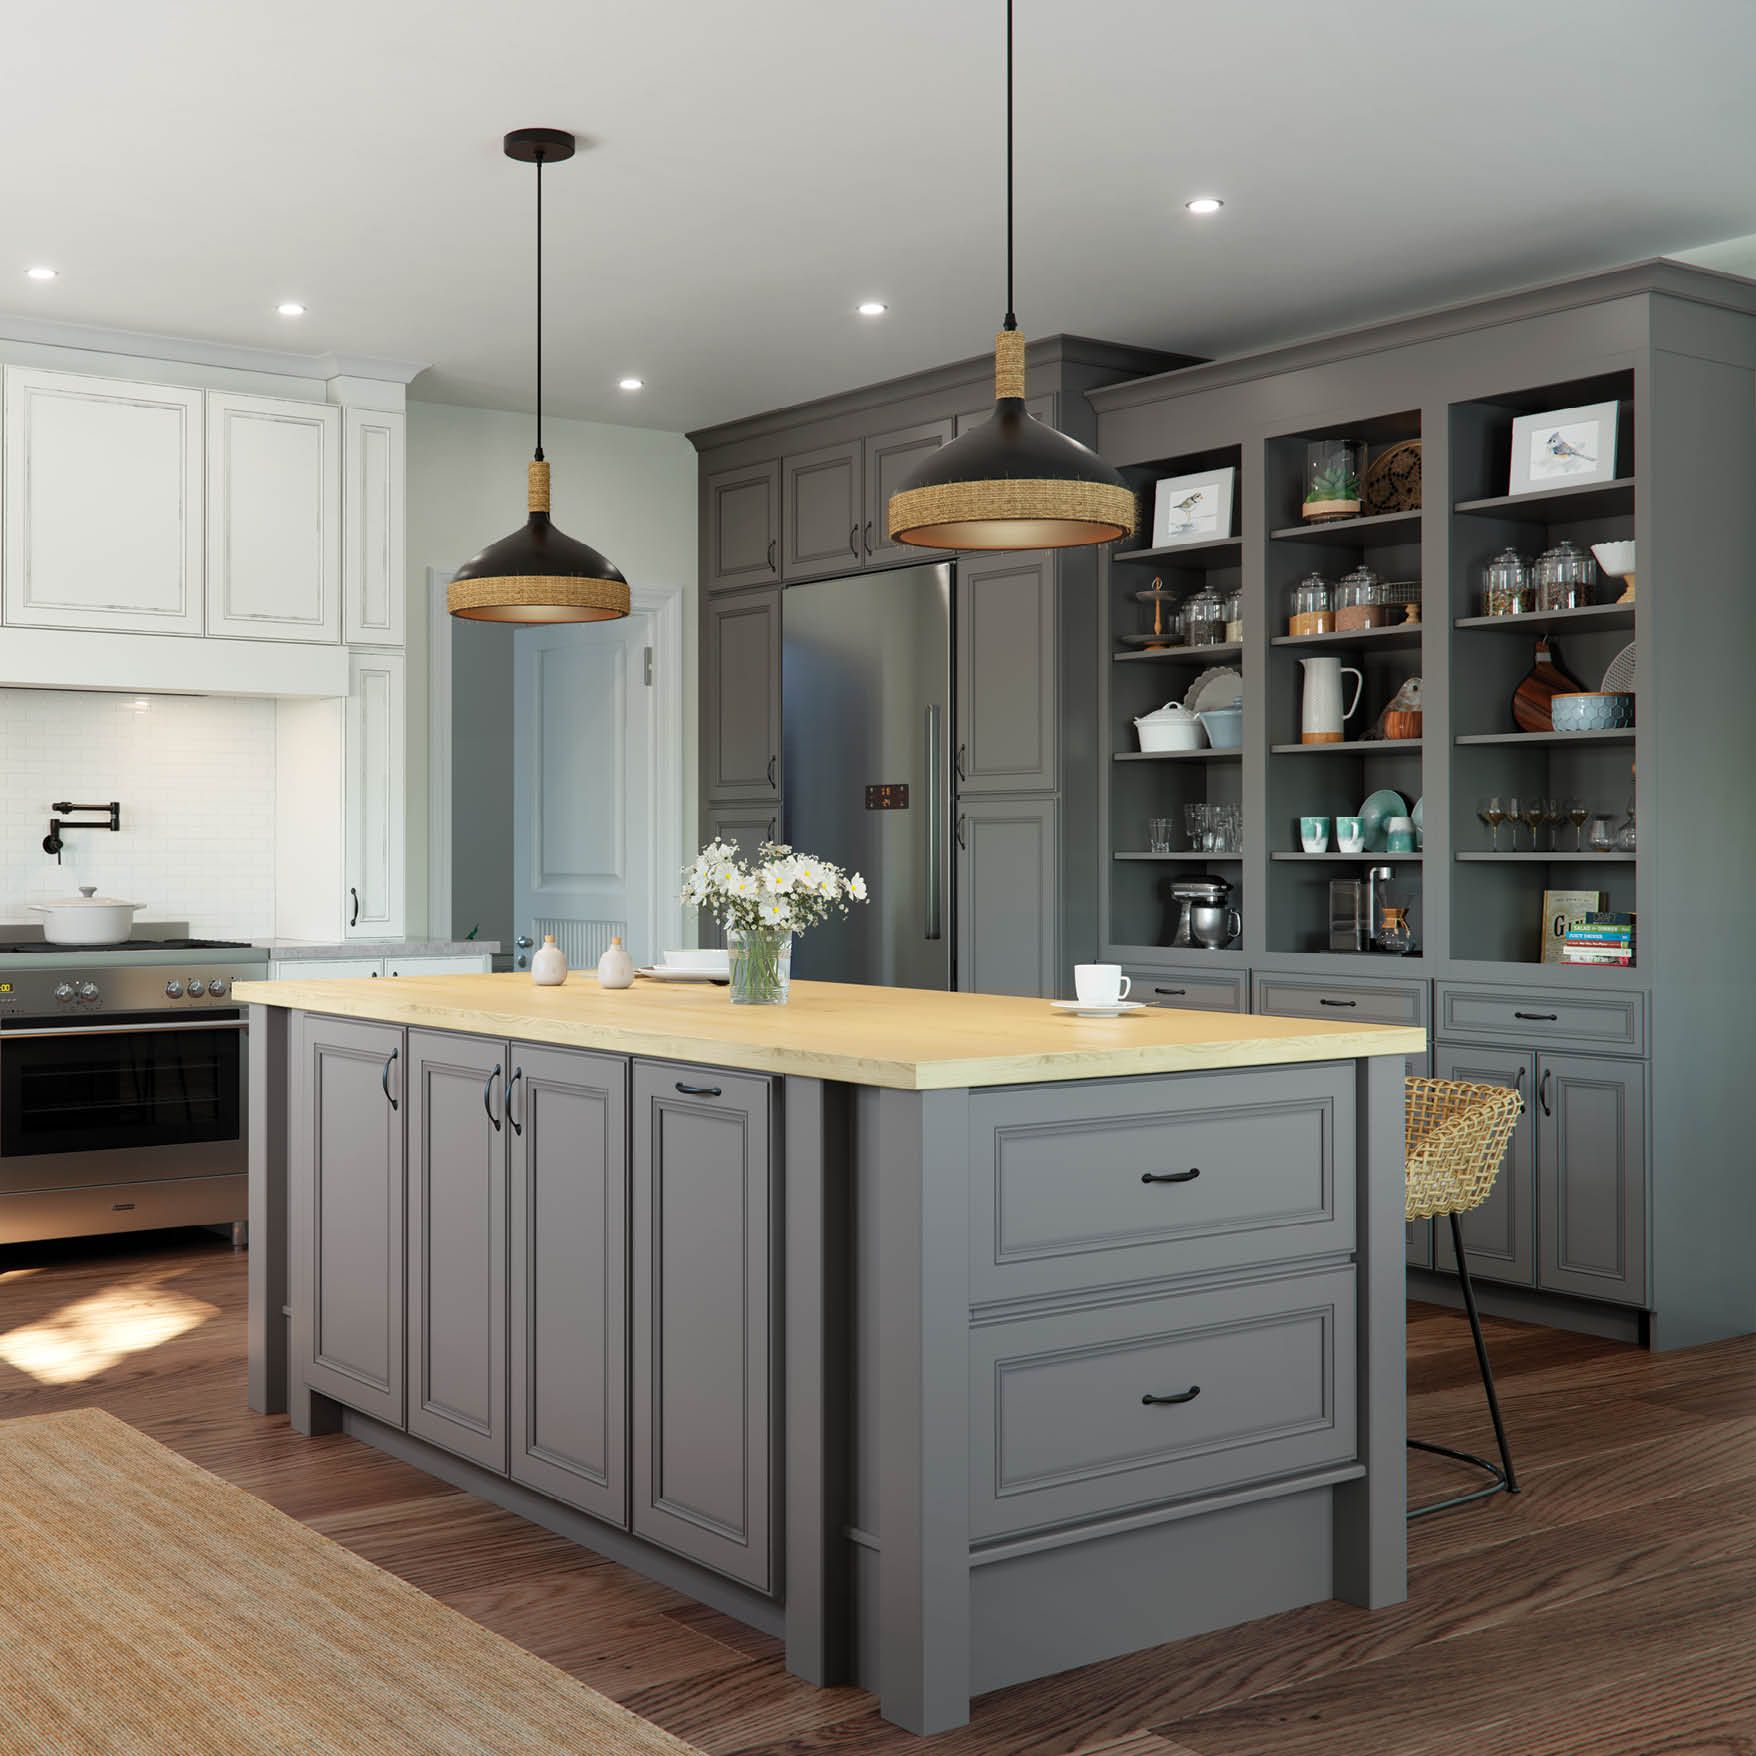 Dramatic 750 Painted Boulder Cabinets Evoke Memories Of The Foggy Mornings On Nantucket This Seafaring Style Is Fil Kitchen Inspirations Cabinet Doors Cabinet